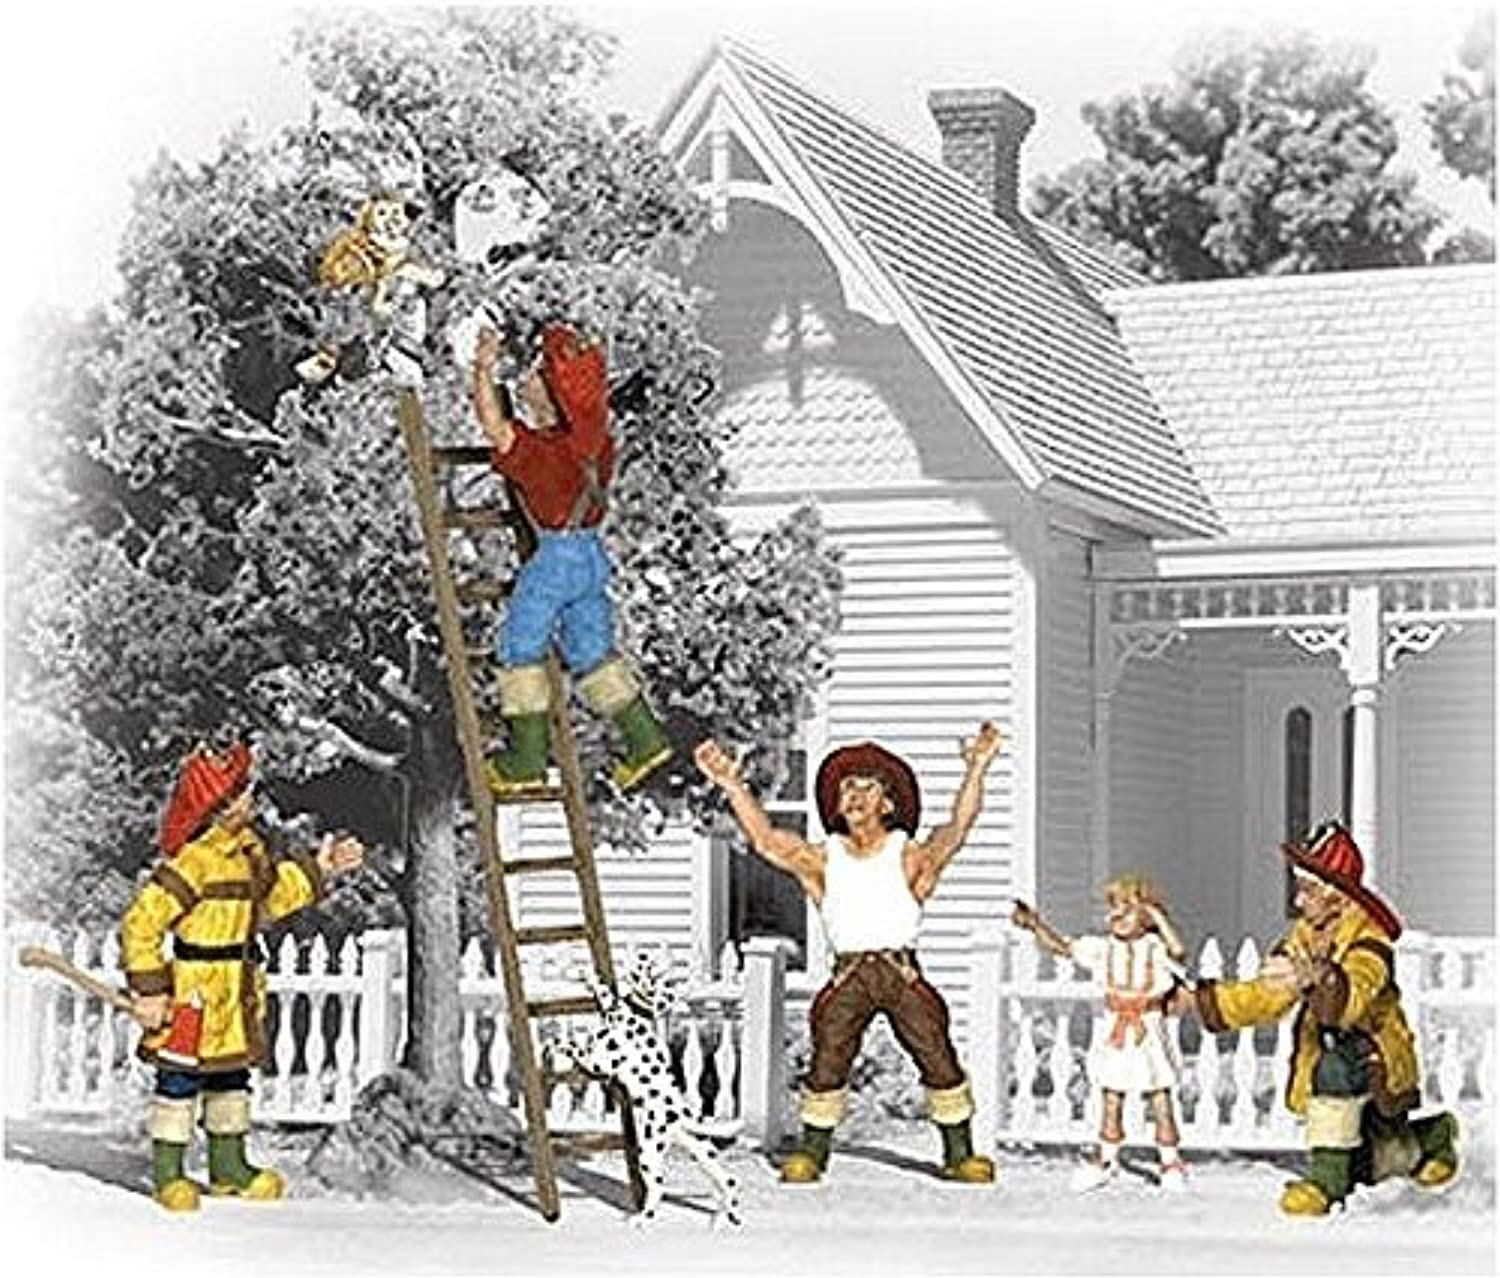 gran descuento Woodland Scenics N N N Firemen to the Rescue WOOA2151 by Woodland Scenics  nuevo sádico